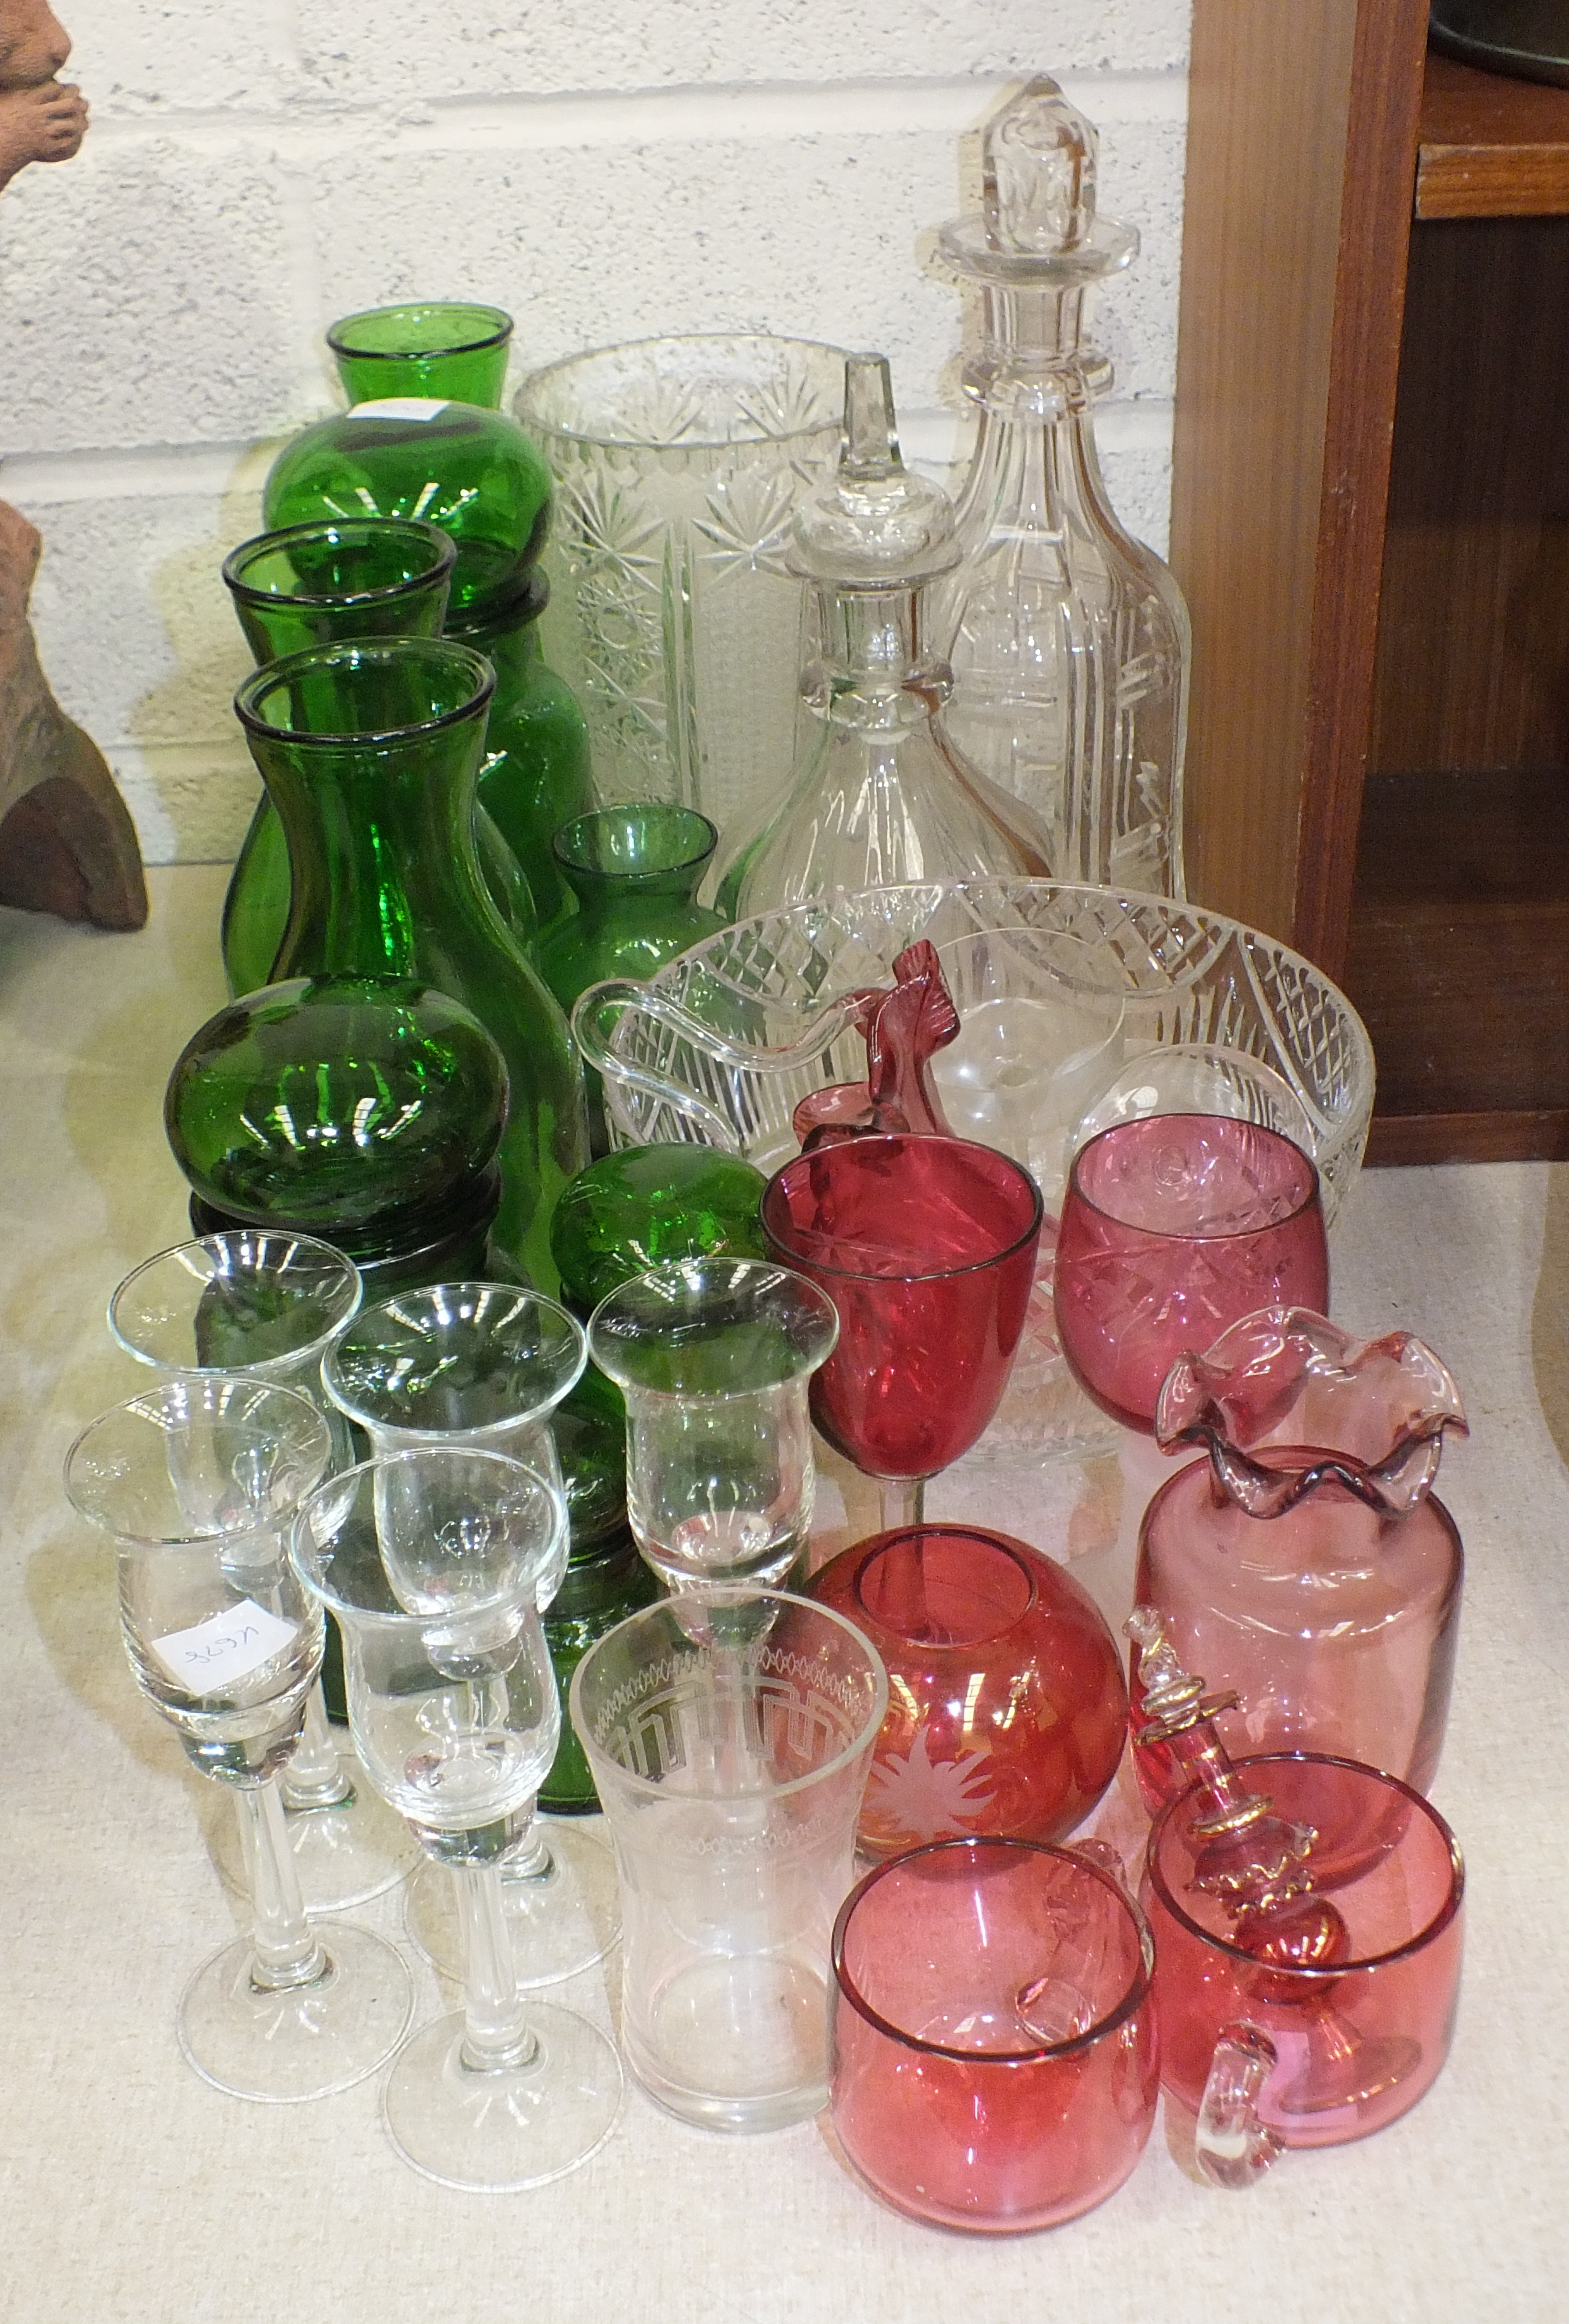 Lot 61 - A small quantity of coloured and clear glassware, including two decanters, green glass vases and